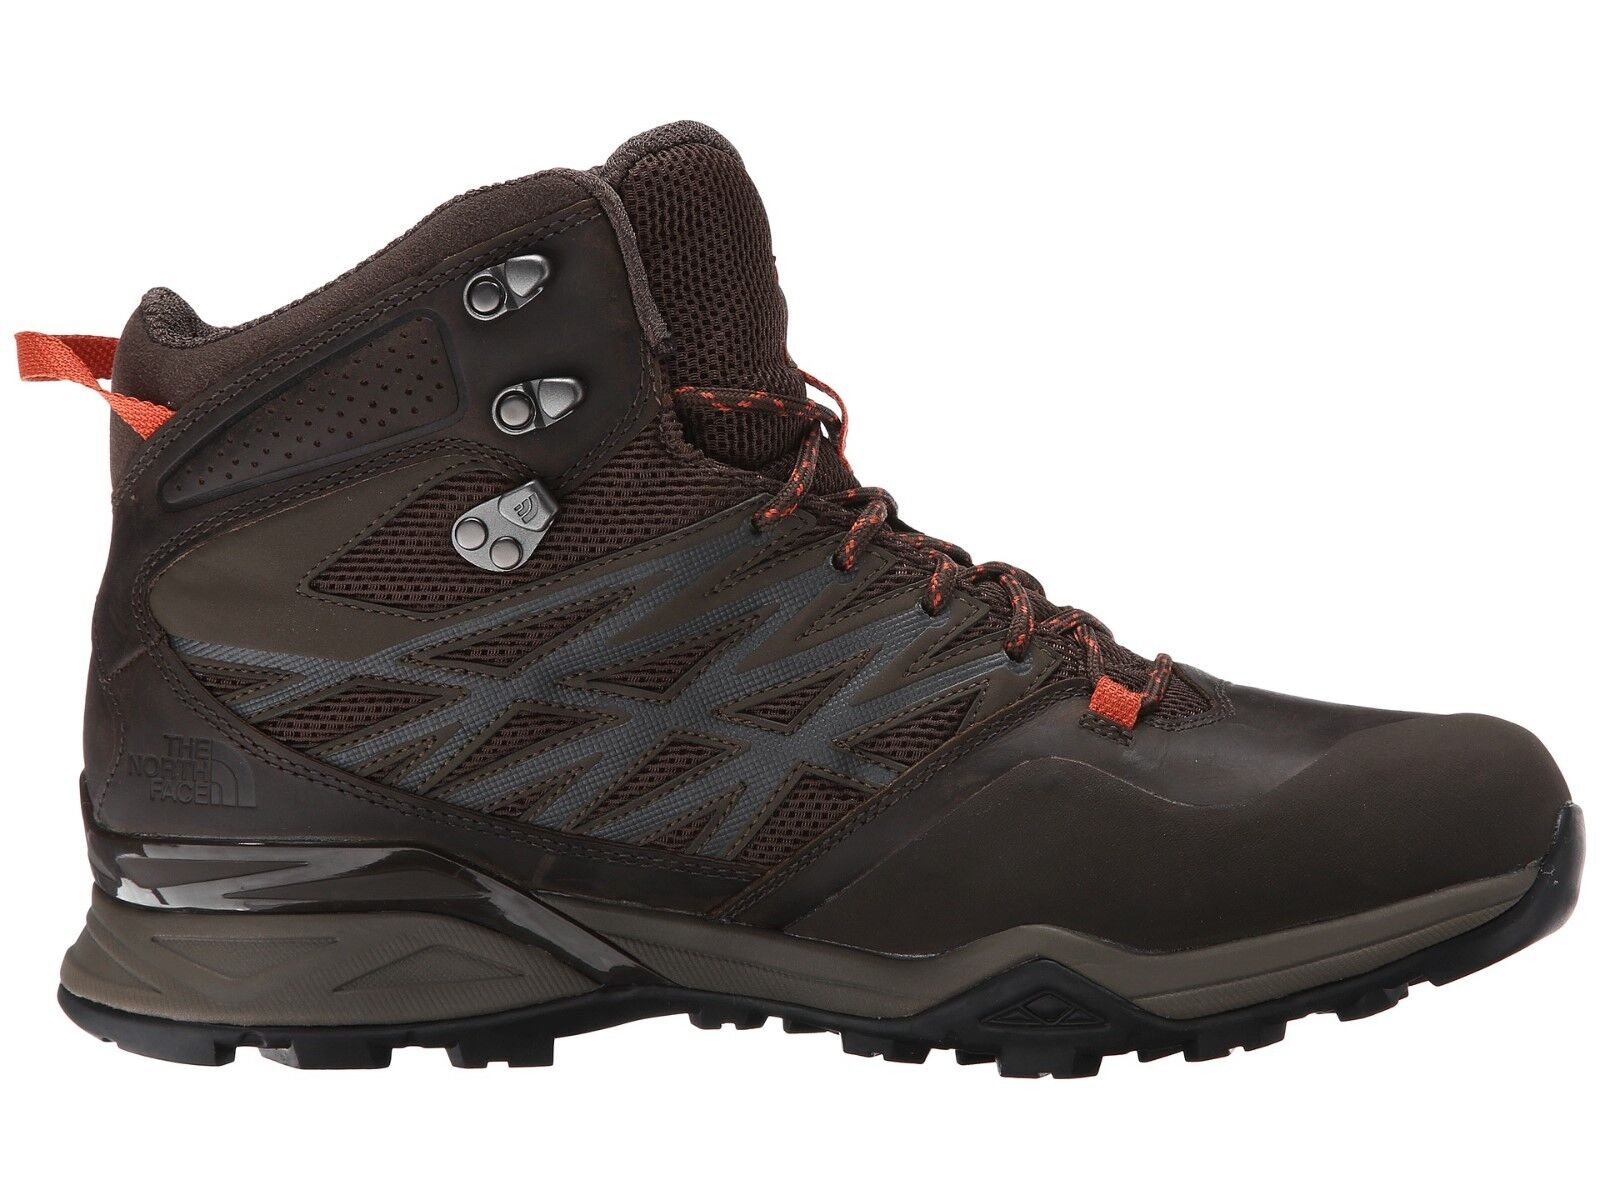 NEW  THE NORTH FACE Hedgehog Hike Mid GTX - men's shoes  US 9